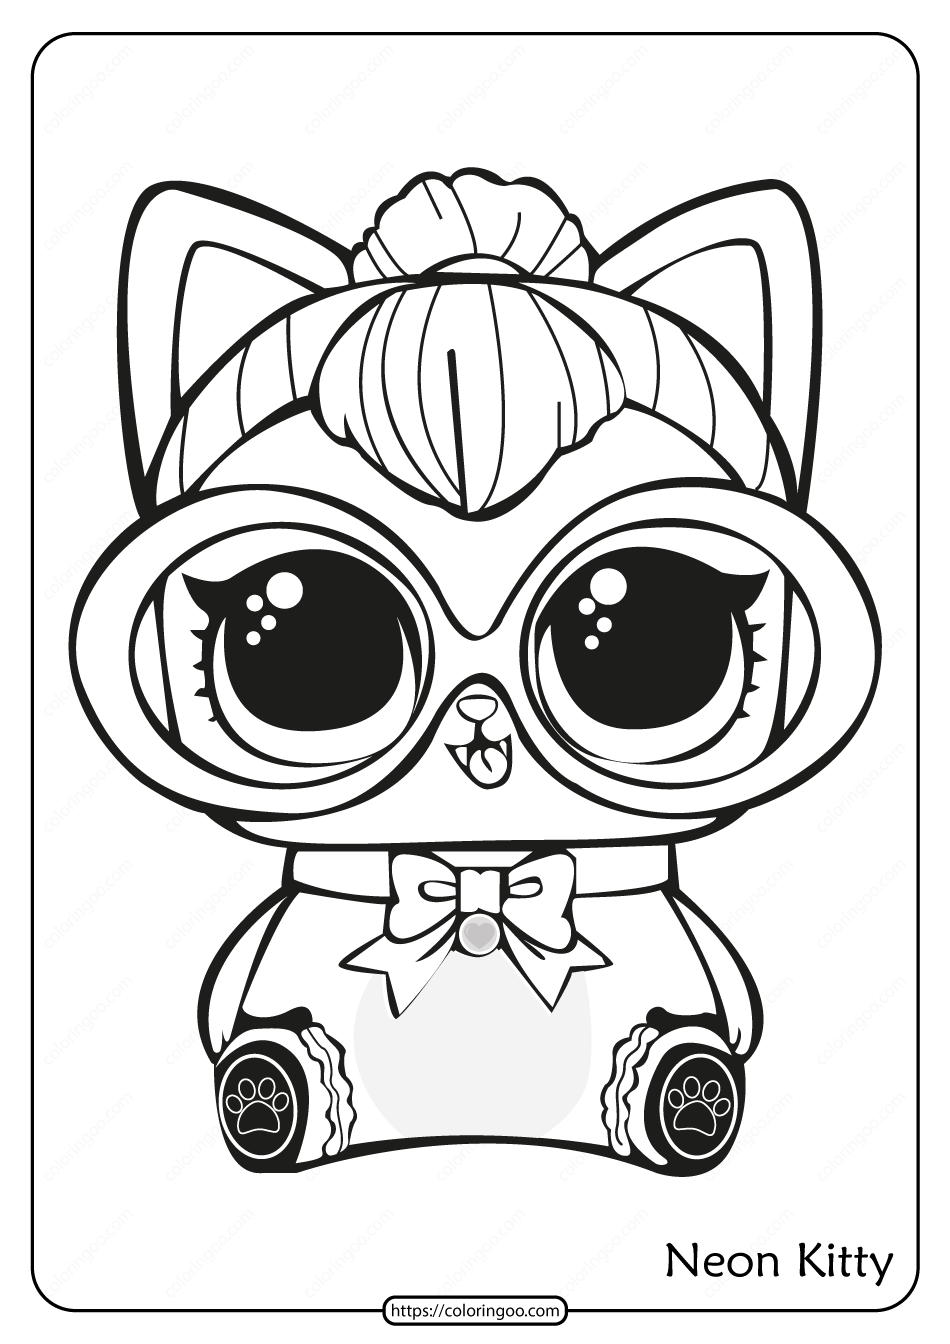 lol doll cat coloring pages free lol doll coloring sheets kitty queen unicorn doll pages coloring lol cat